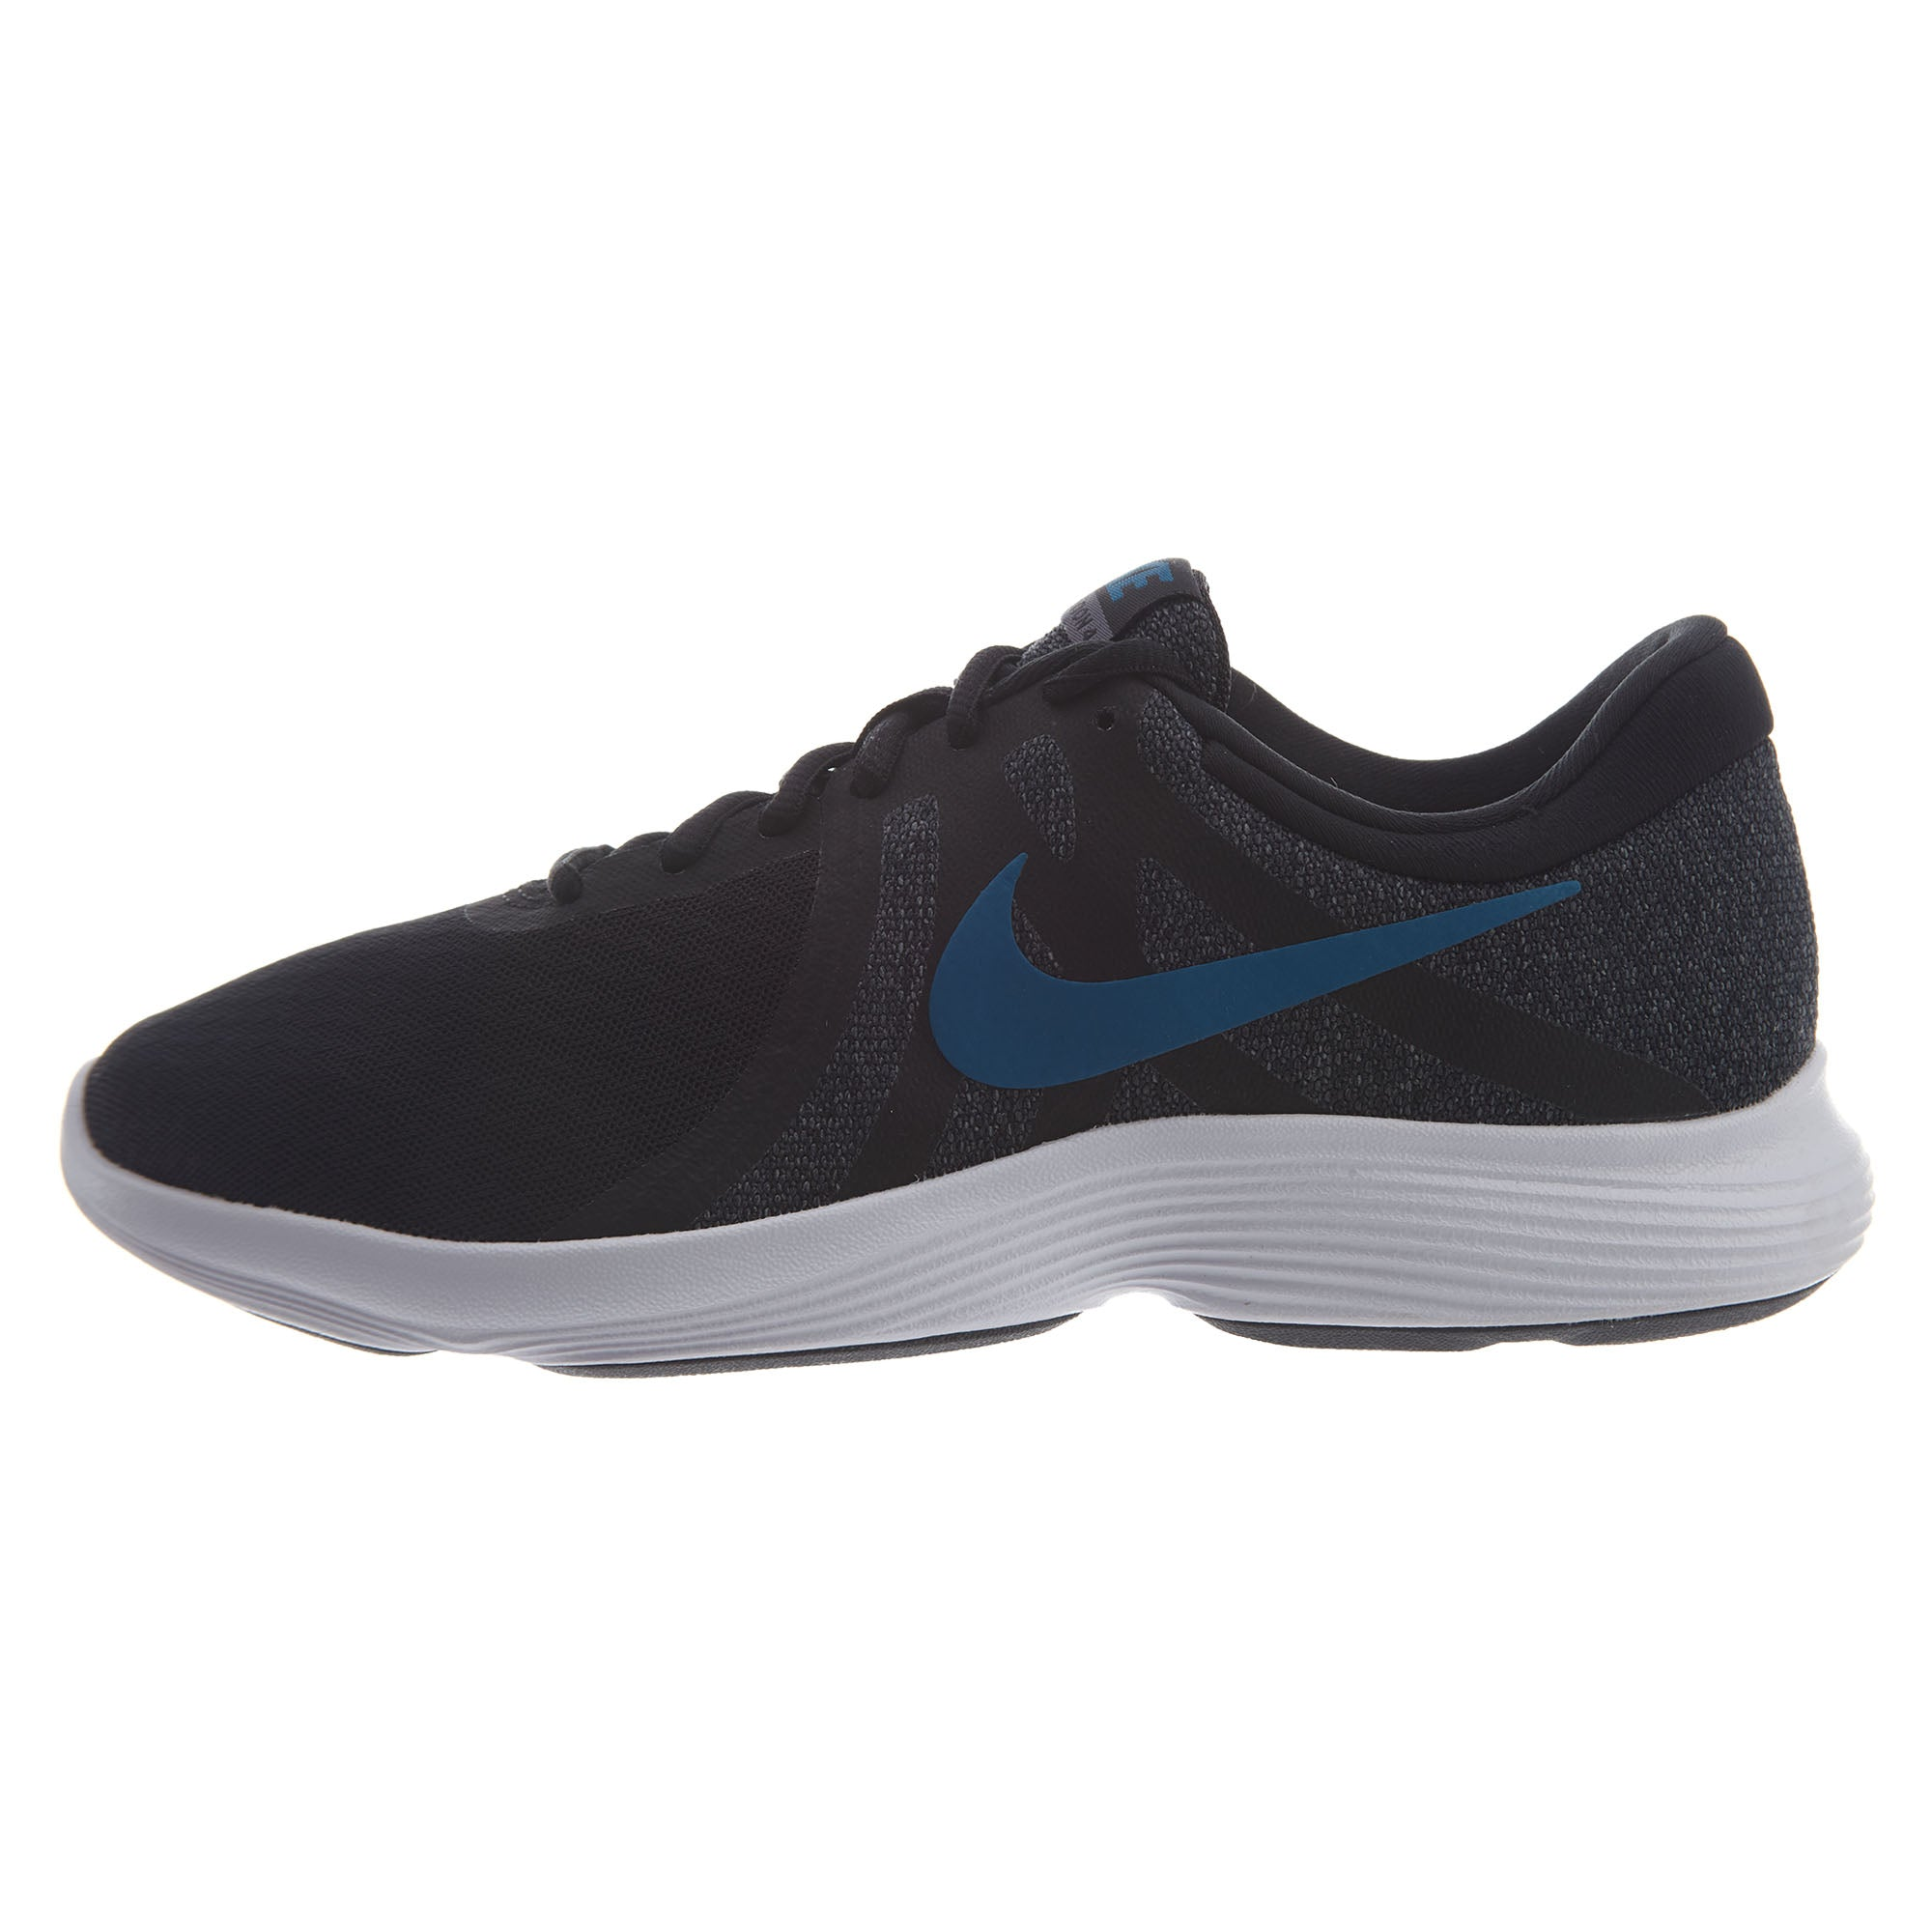 9cfb1d4ad845b Nike Revolution 4 Mens Style   908988-014 – TheEagleShoes